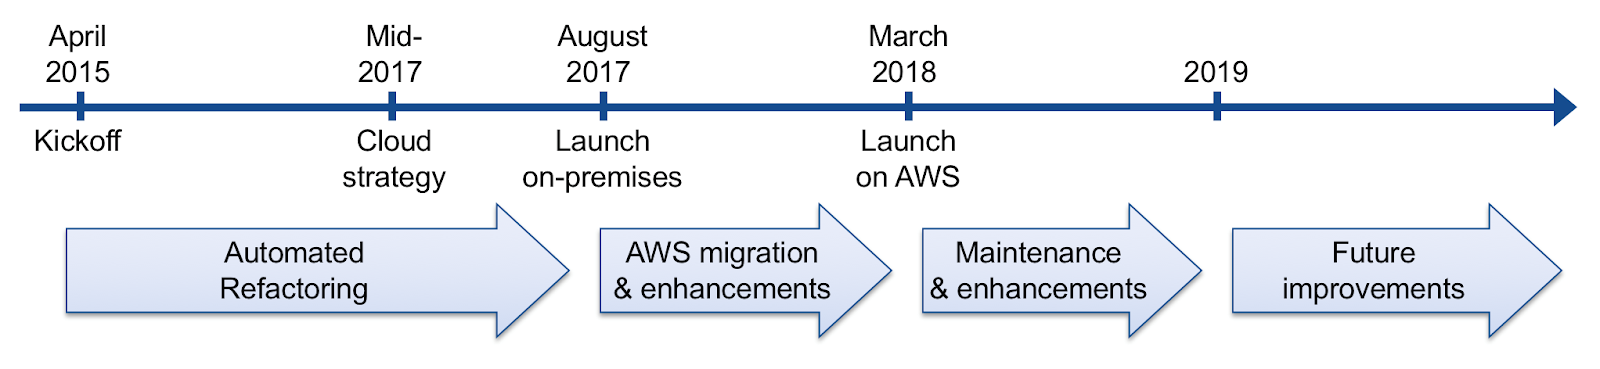 Automated Refactoring of a New York Times Mainframe to AWS